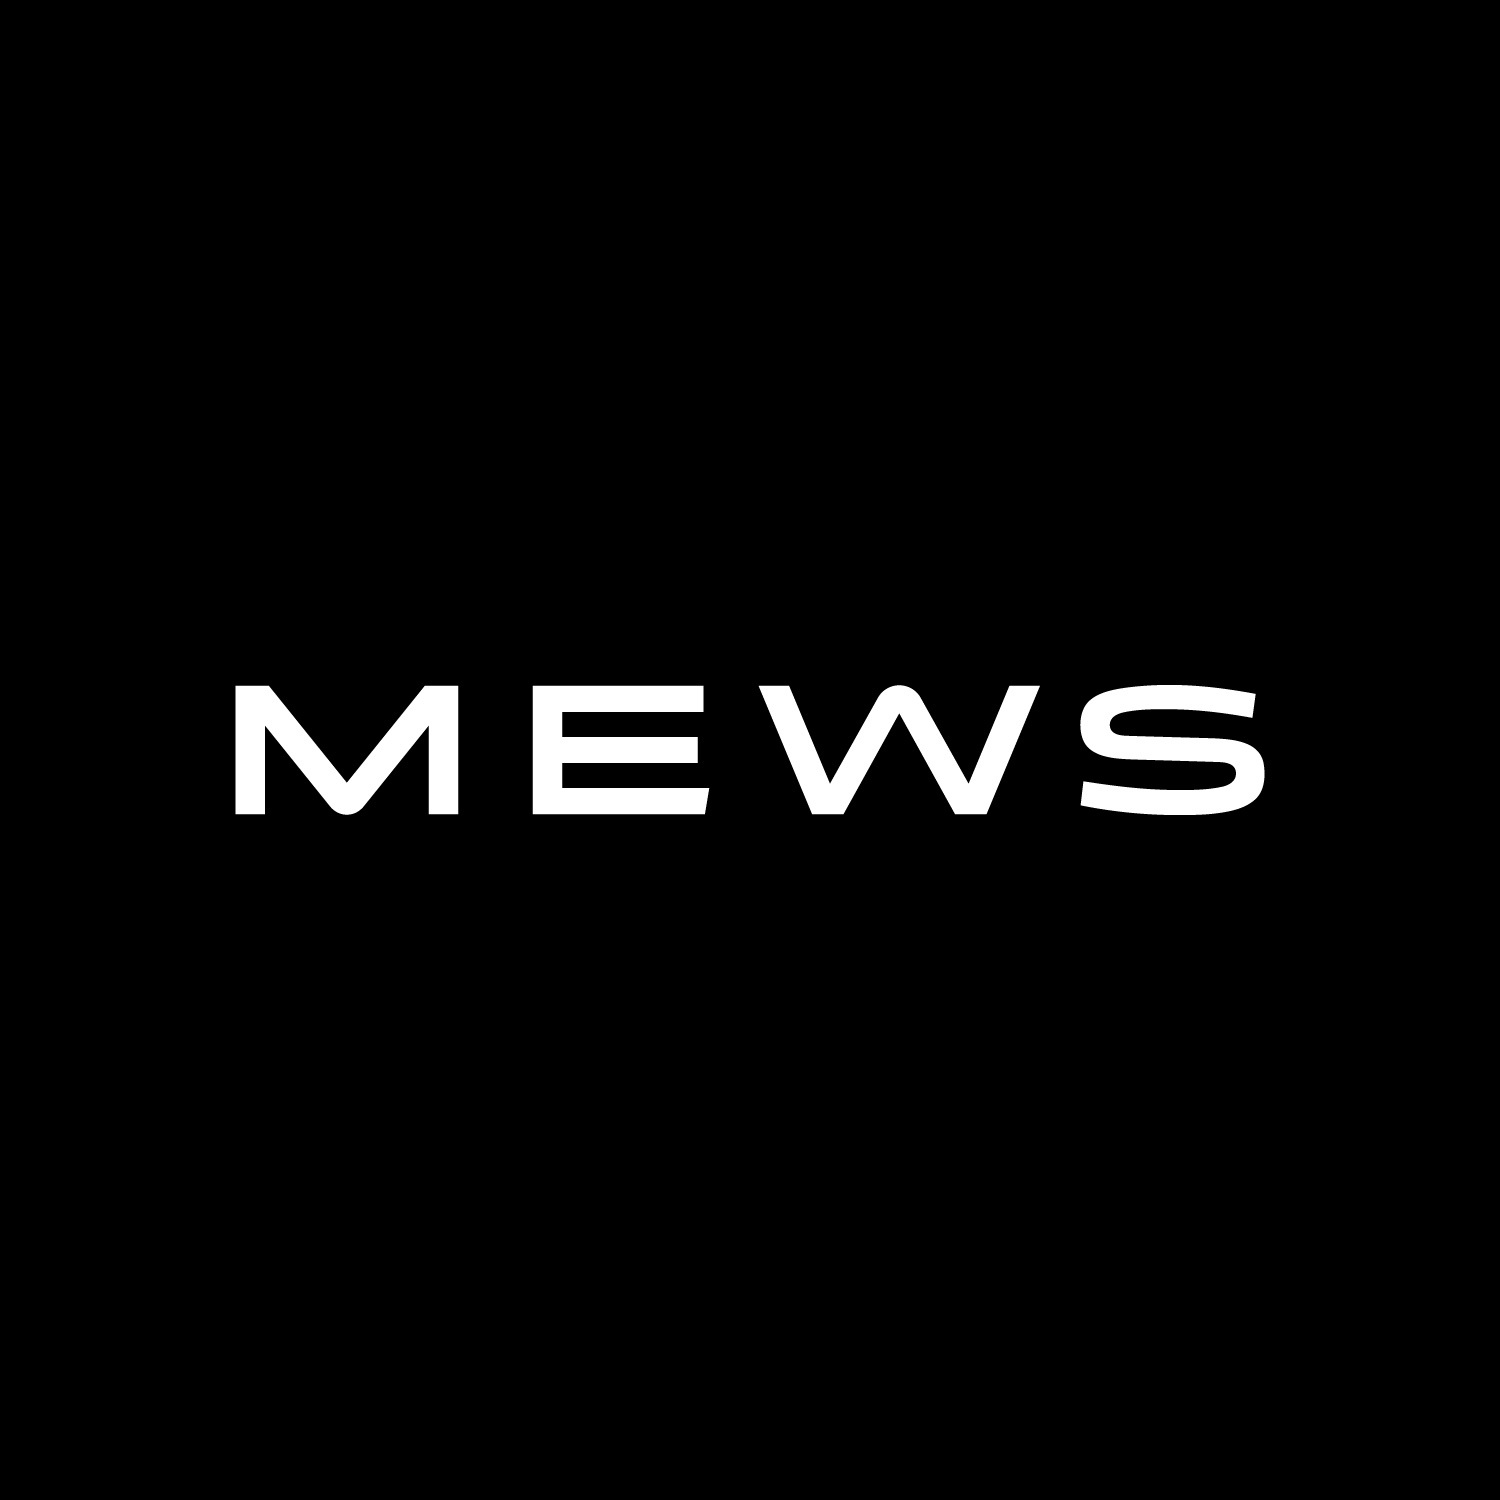 Mews (Booking Engine)